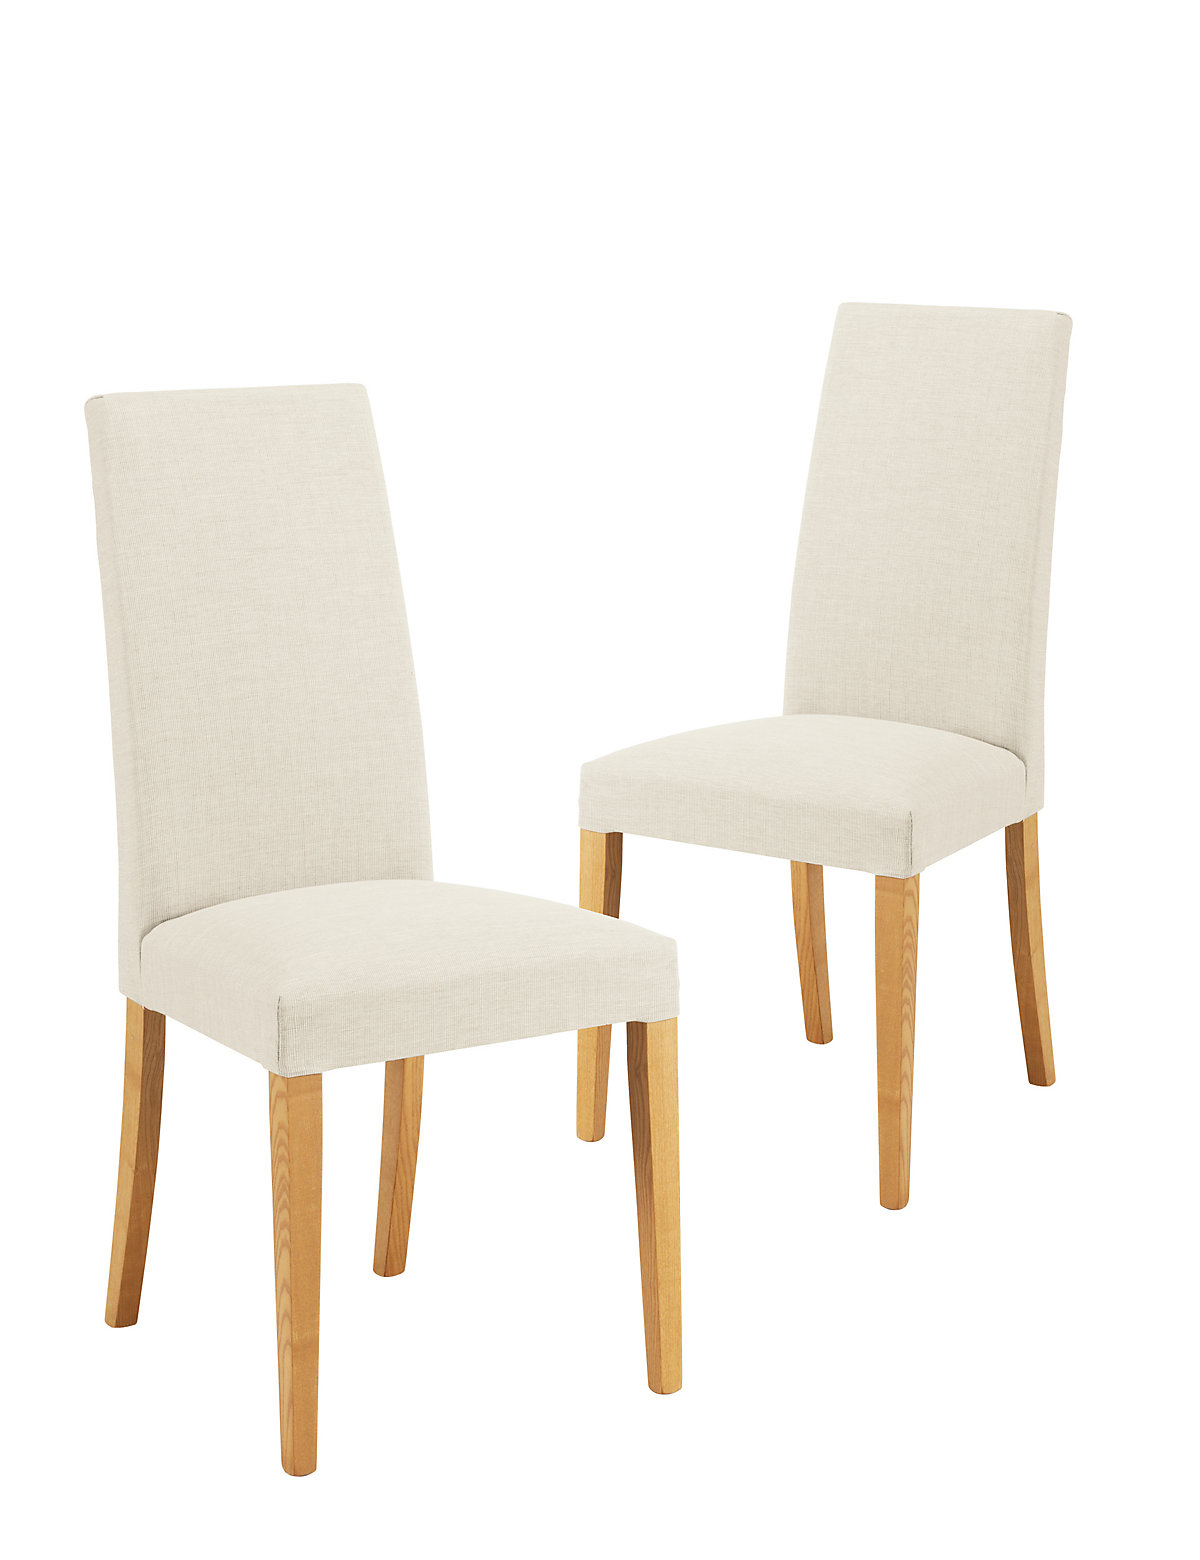 2 Alton Dining Chair : T652926K0ISPDPMAXIZOOM from s190497947.websitehome.co.uk size 1200 x 1560 jpeg 95kB